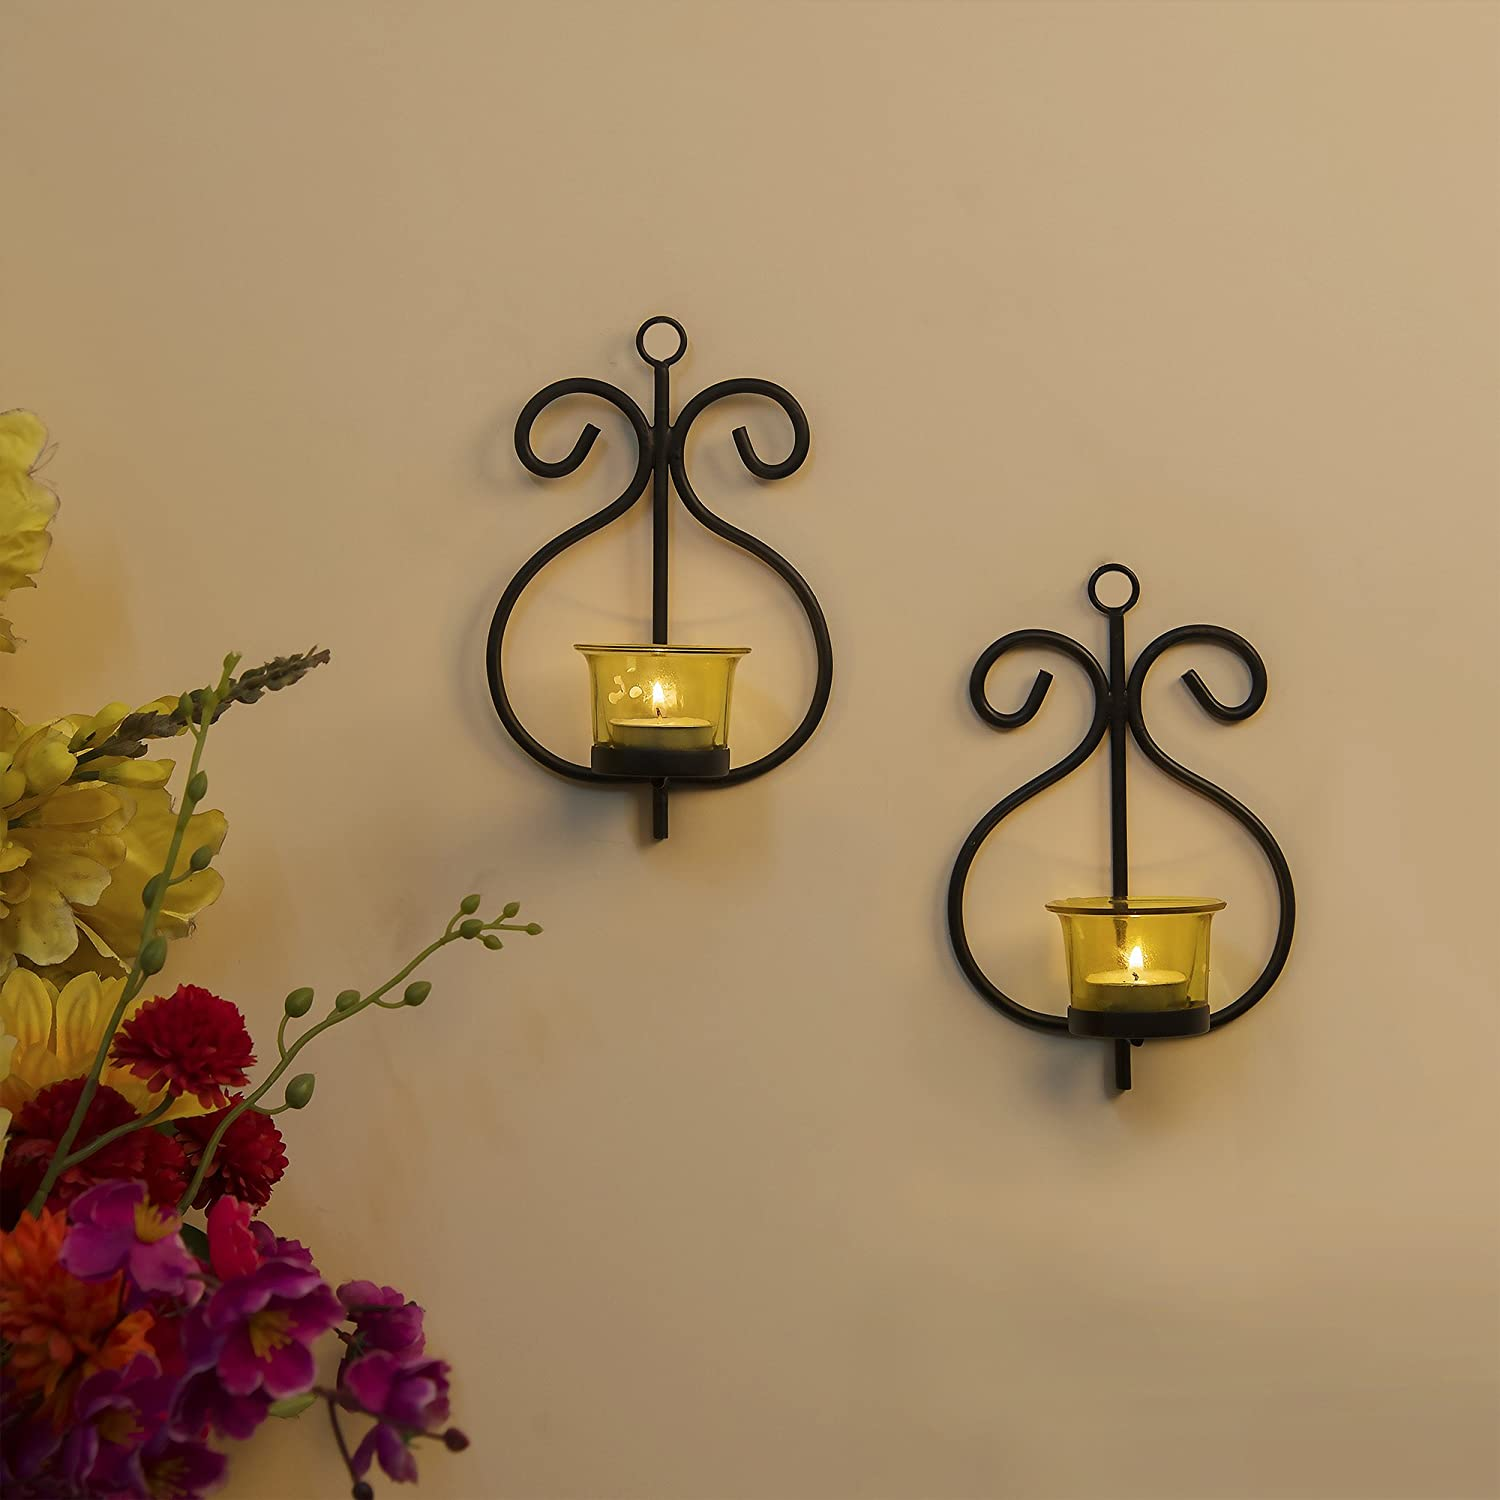 Buy Homesake Set Of 2 Decorative Wall Sconcecandle Holder With